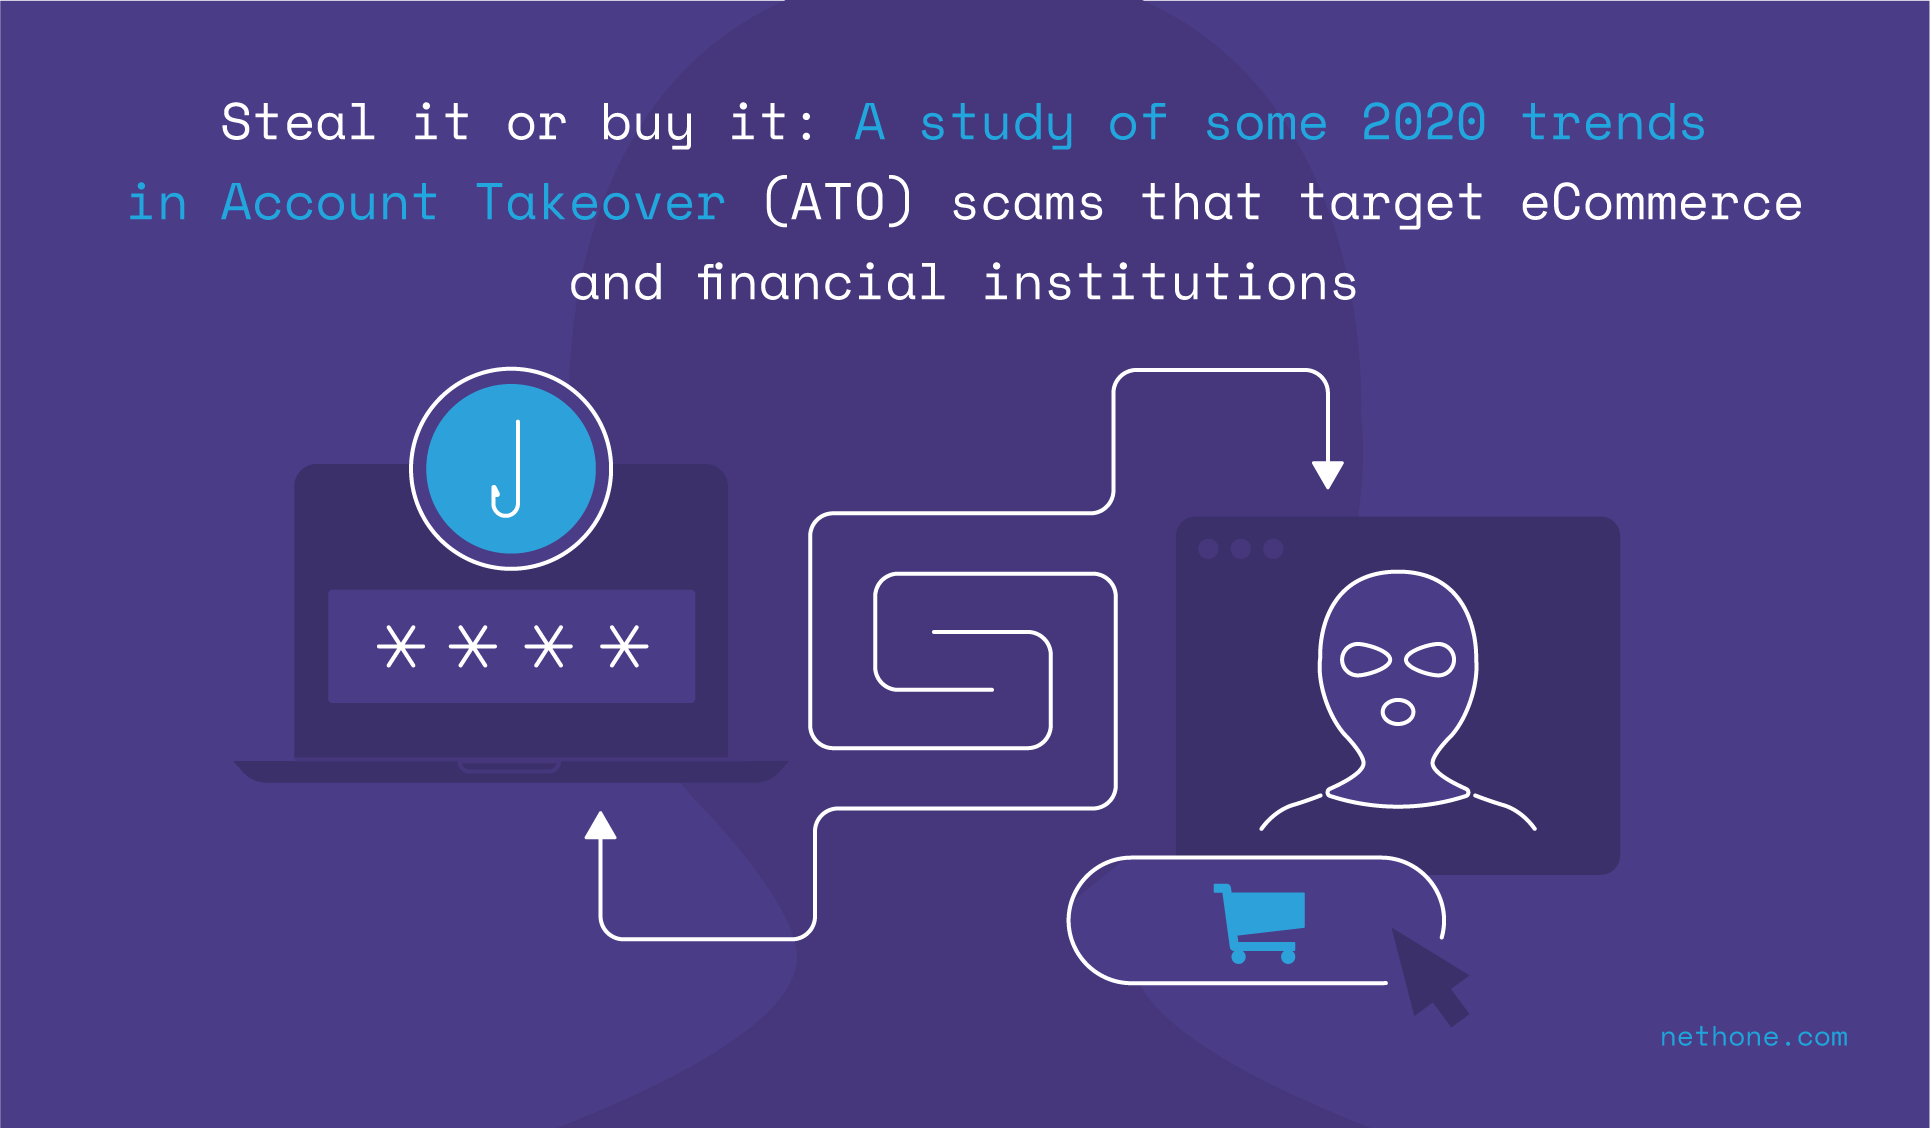 Steal it or buy it: A study of some 2020 trends in Account Takeover (ATO) scams that target eCommerce and financial institutions